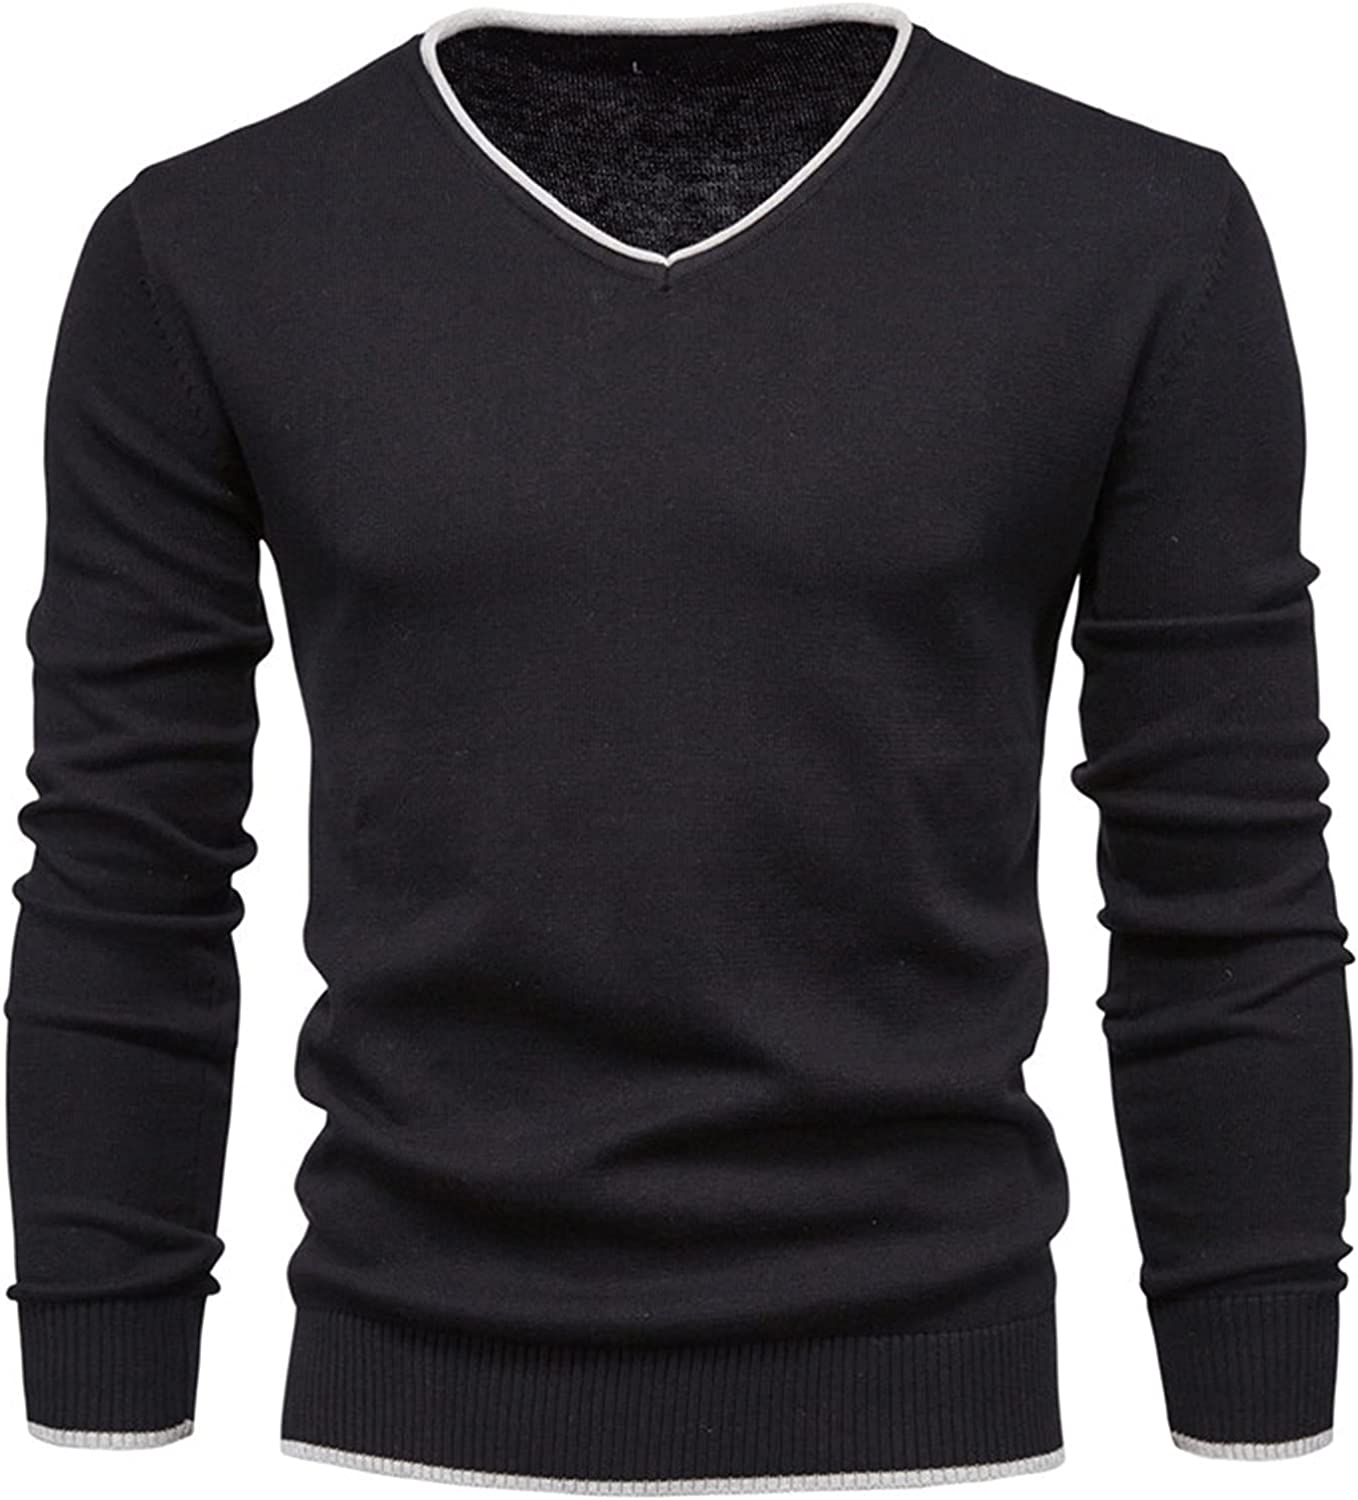 Zzalo Men Autumn Sweater V-neck Pullovers Cotton Solid Color Long Sleeve Slim Sweaters Men Navy Knitwear